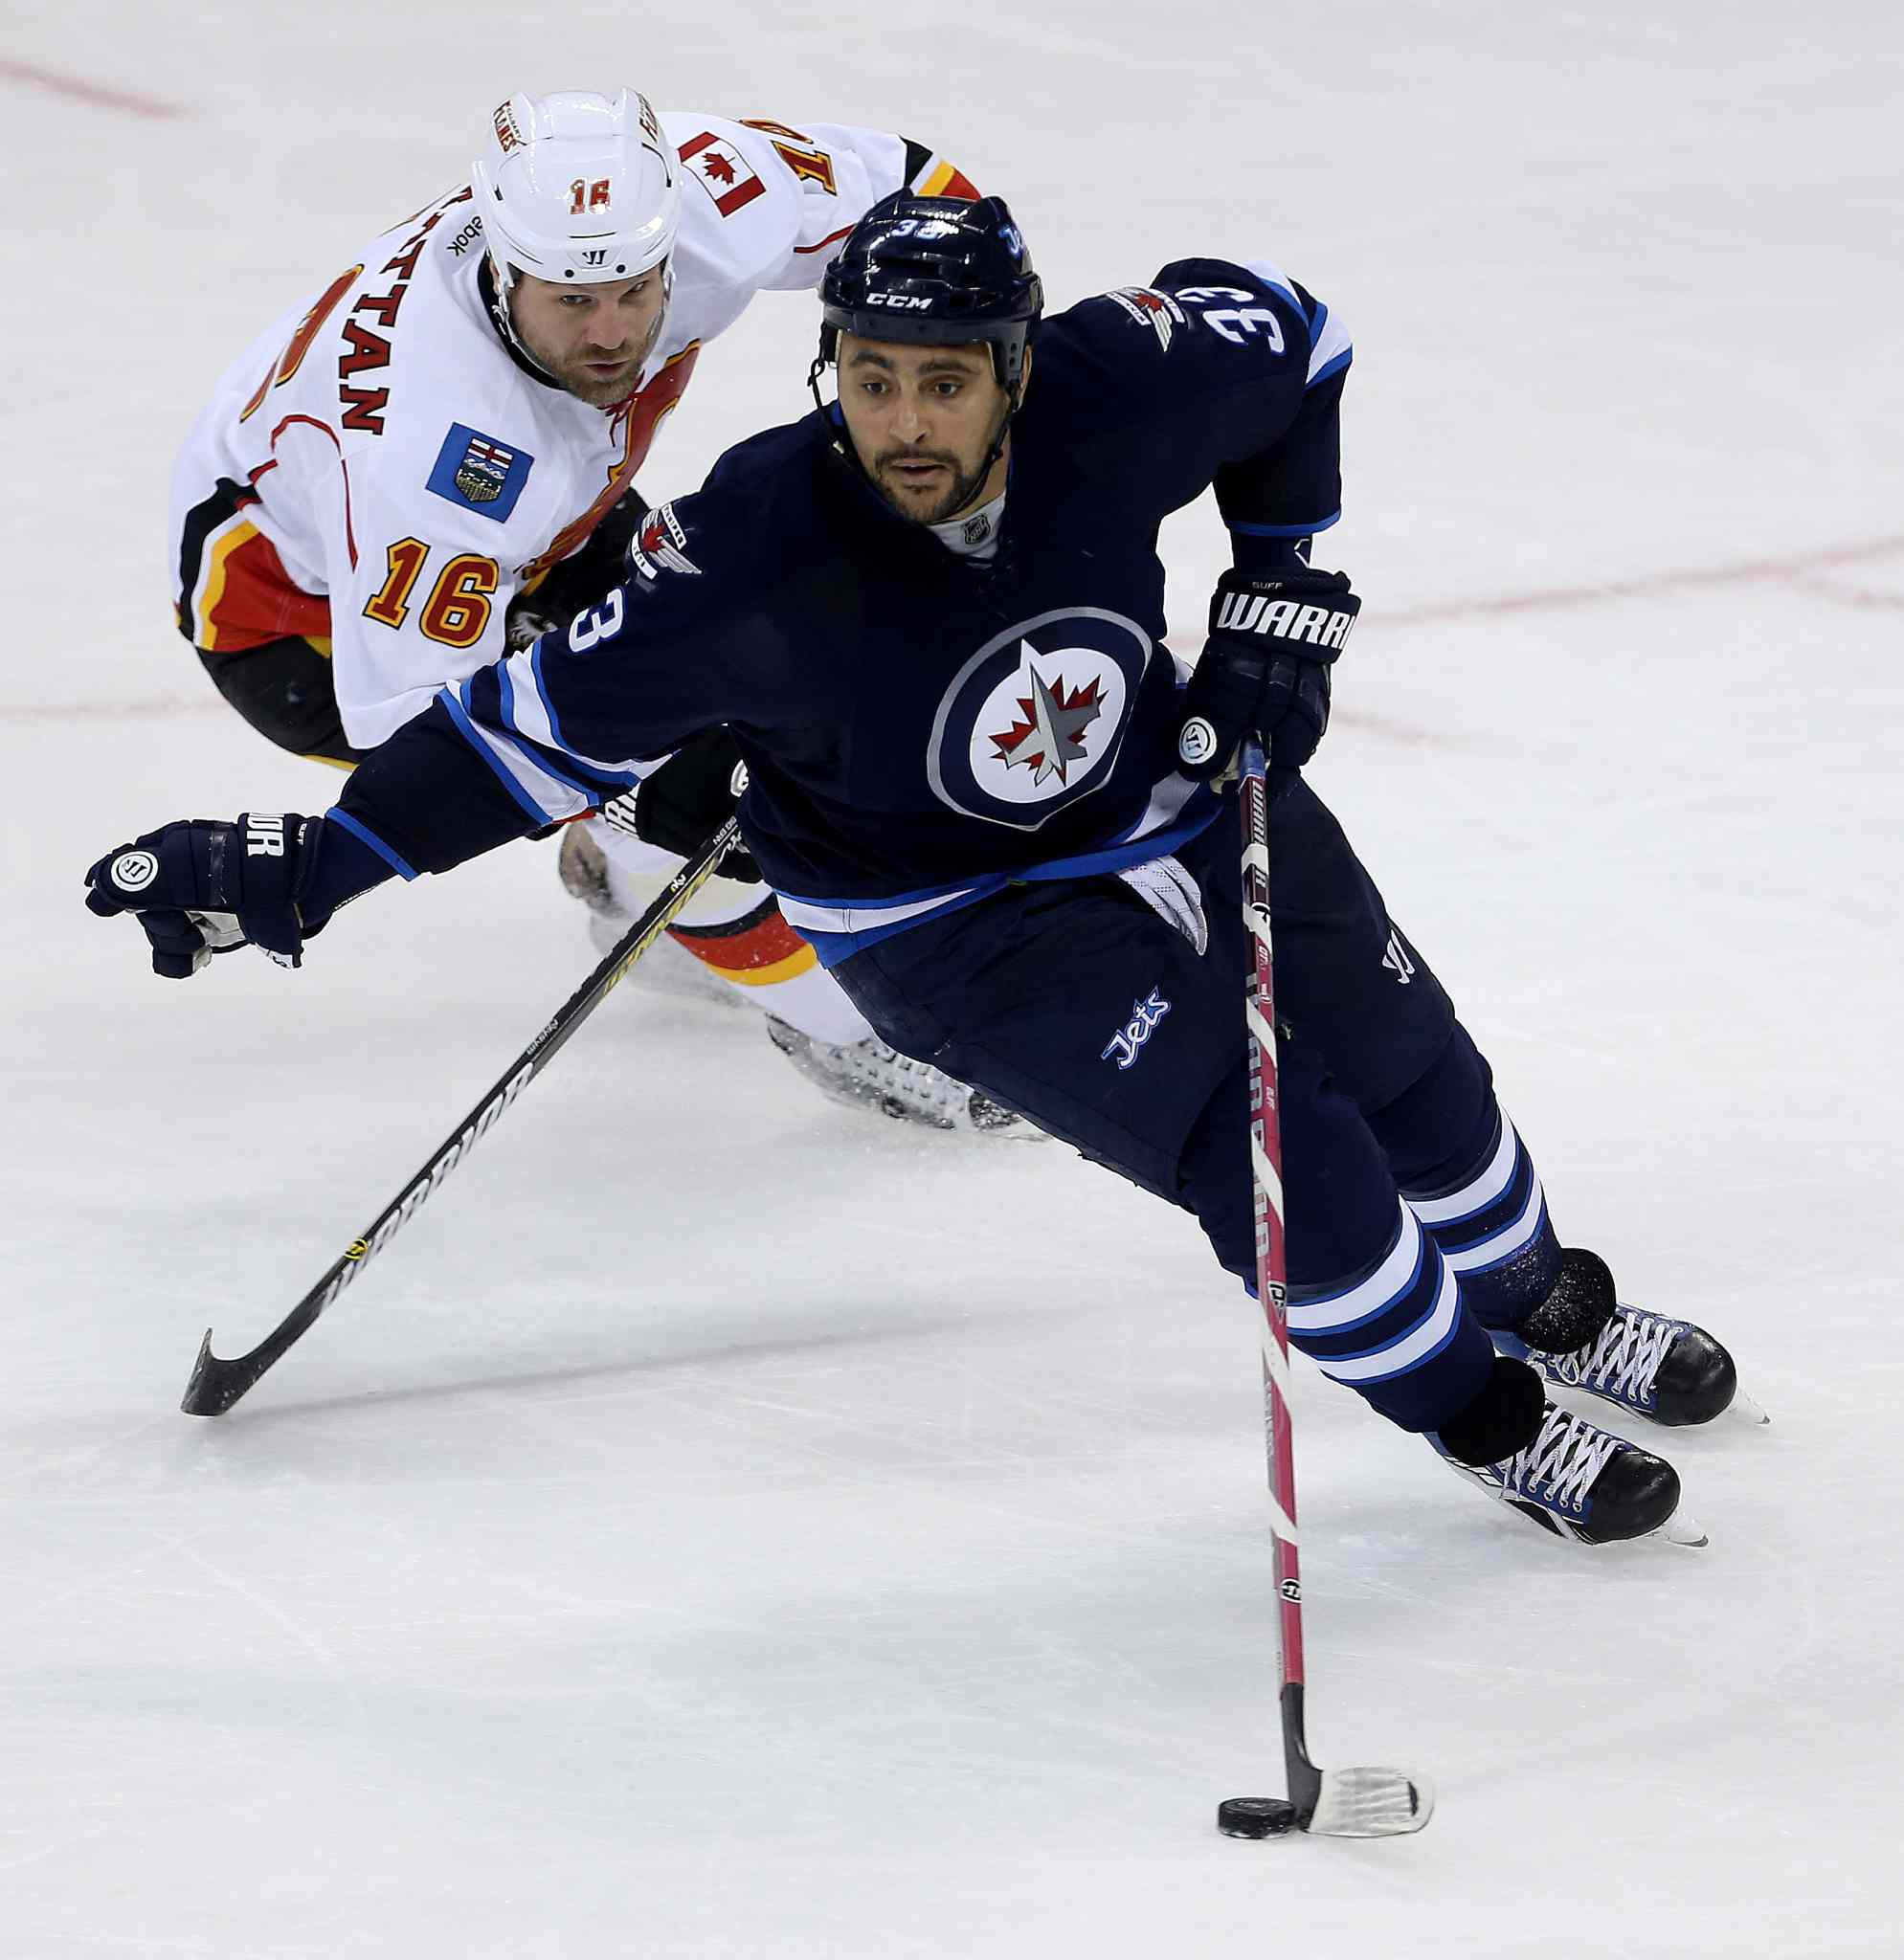 Calgary Flames' Brian McGrattan (16) and Winnipeg Jets' Dustin Byfuglien (33) fight for the puck during first period NHL hockey action in Winnipeg Monday, November 18, 2013.